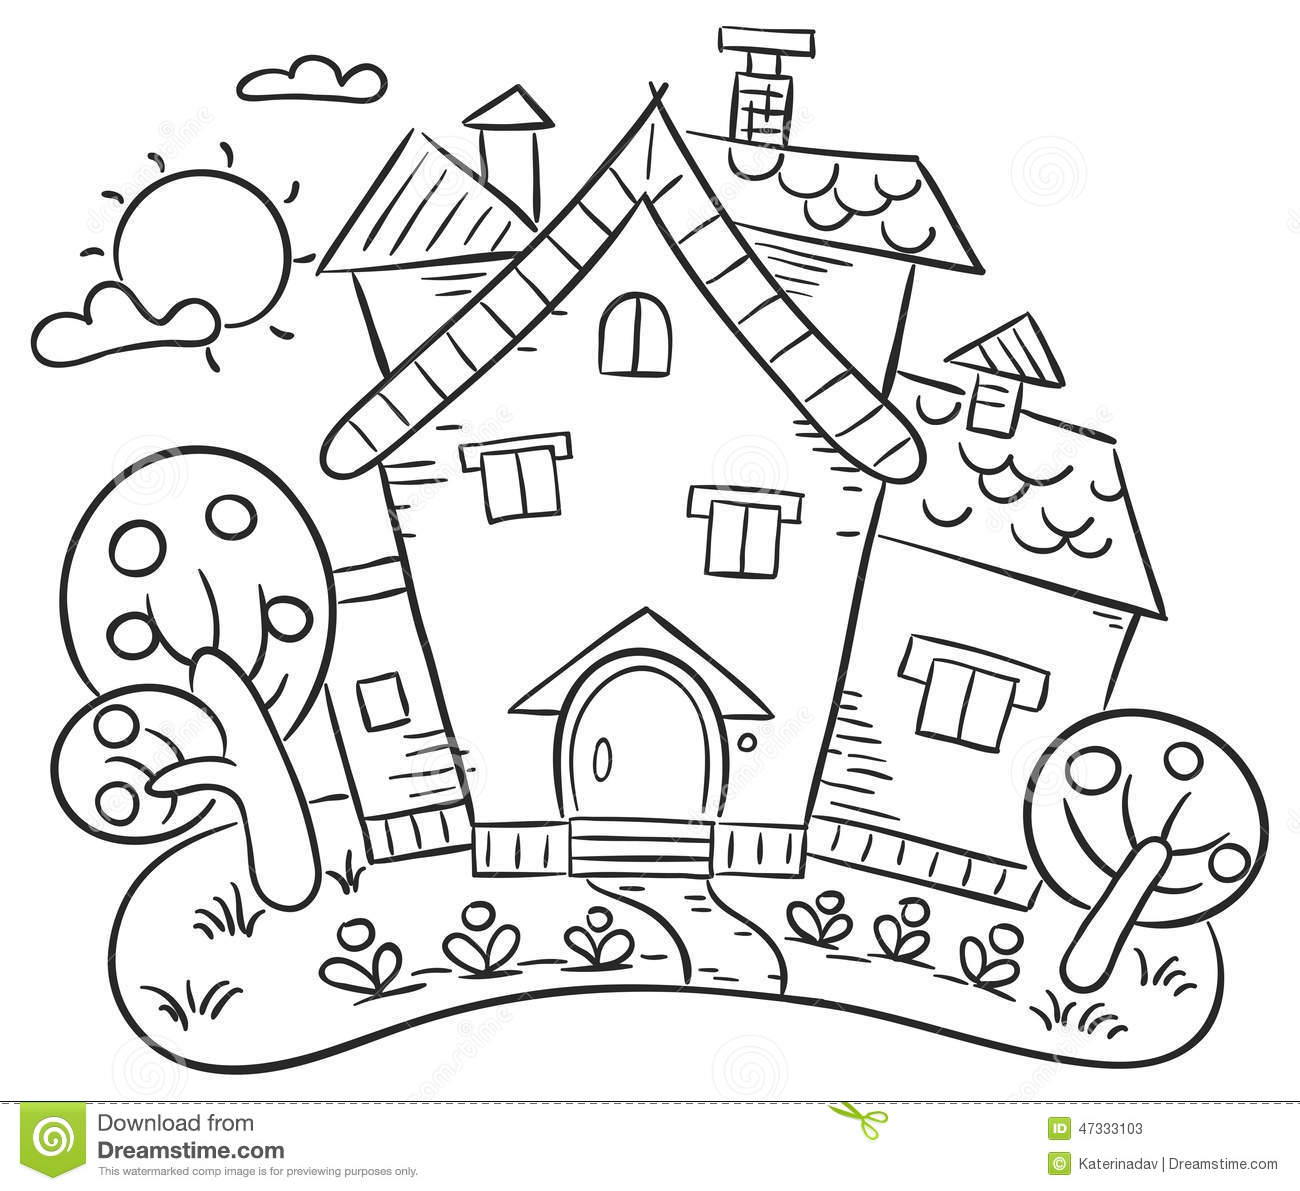 House With A Garden Gardening Clipart Black And White Countryside.